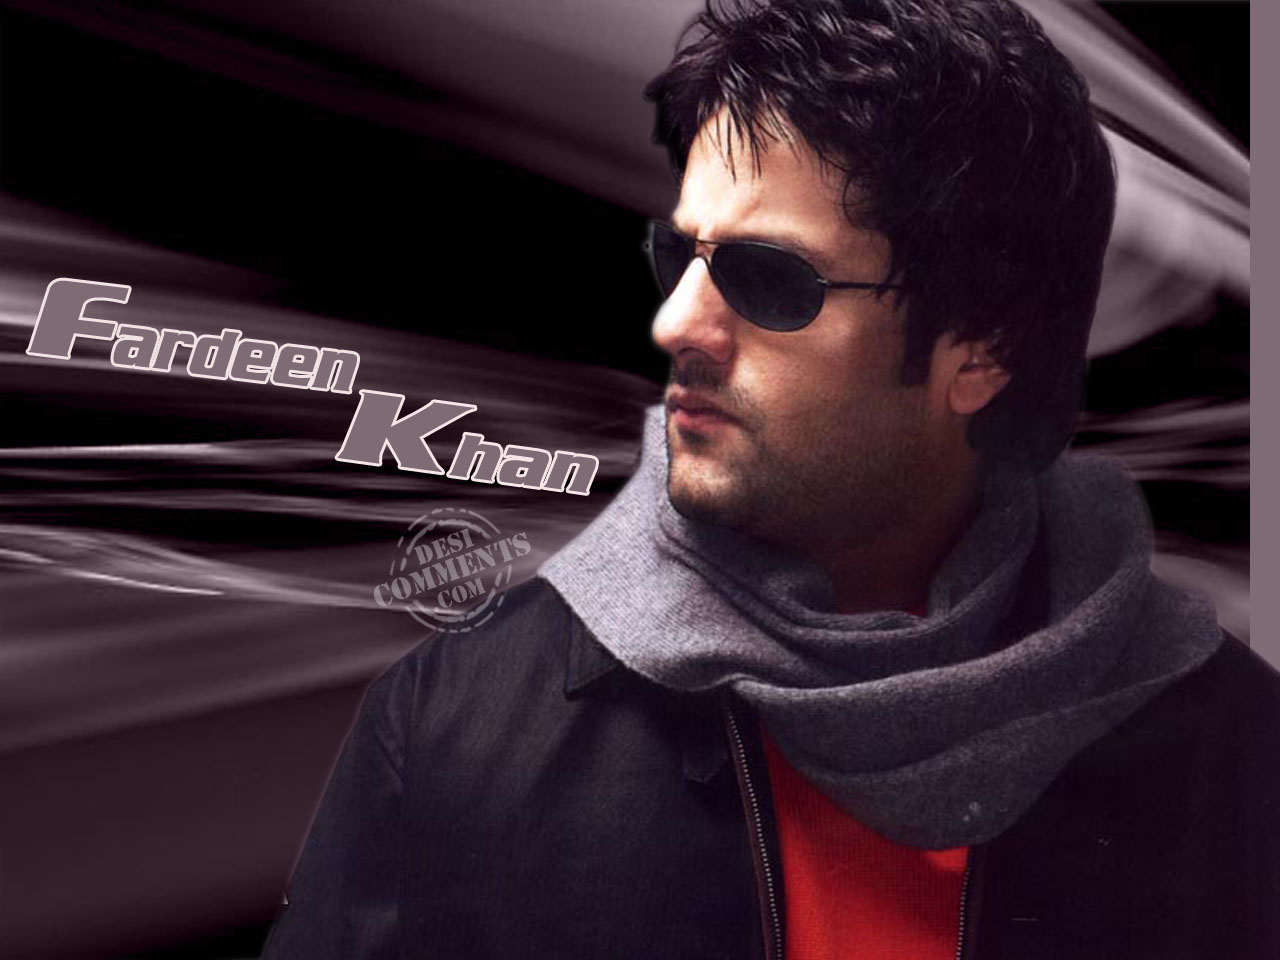 Deep Quotes Wallpapers Fardeen Khan Wallpapers Bollywood Wallpapers